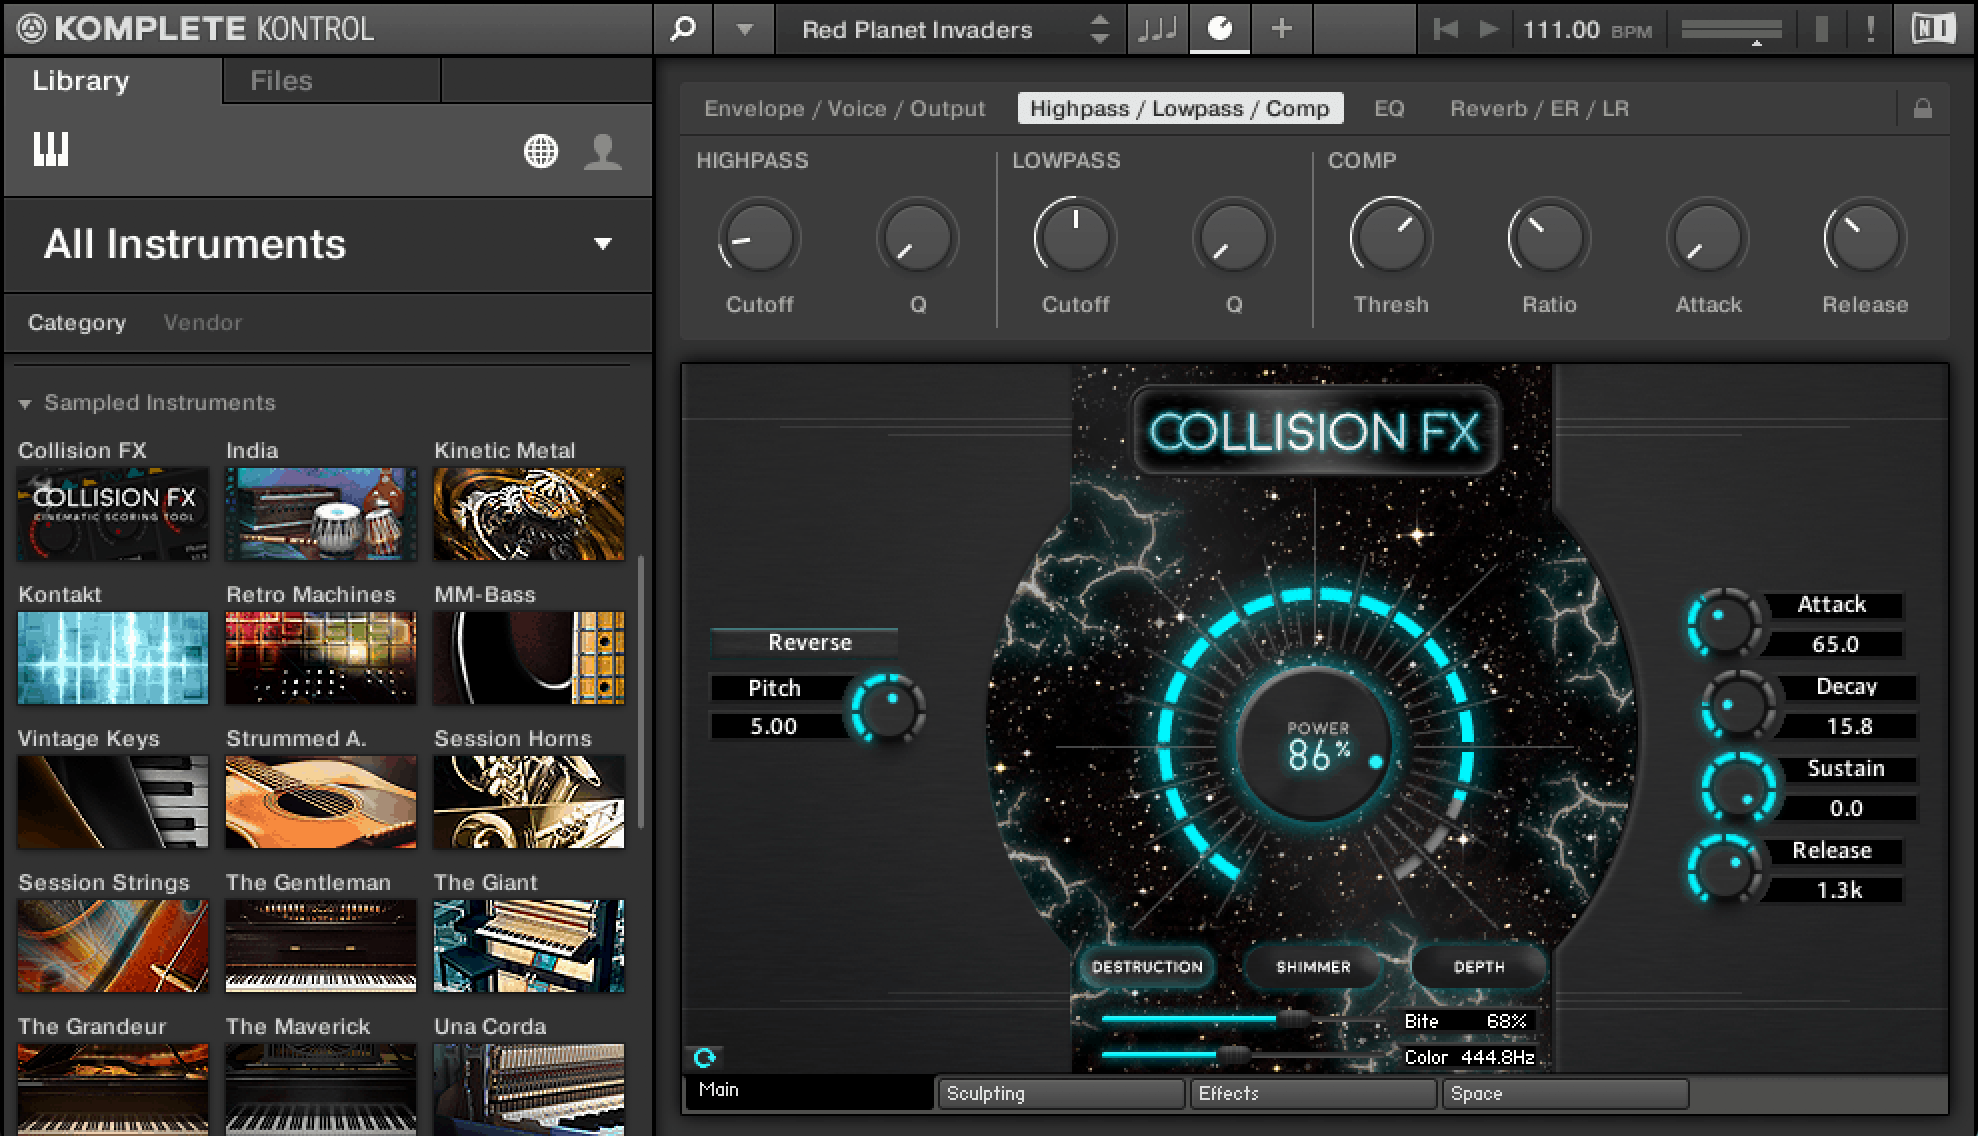 Komplete Kontrol Collision FX Main Destruction Page NKS Kontakt Plugin